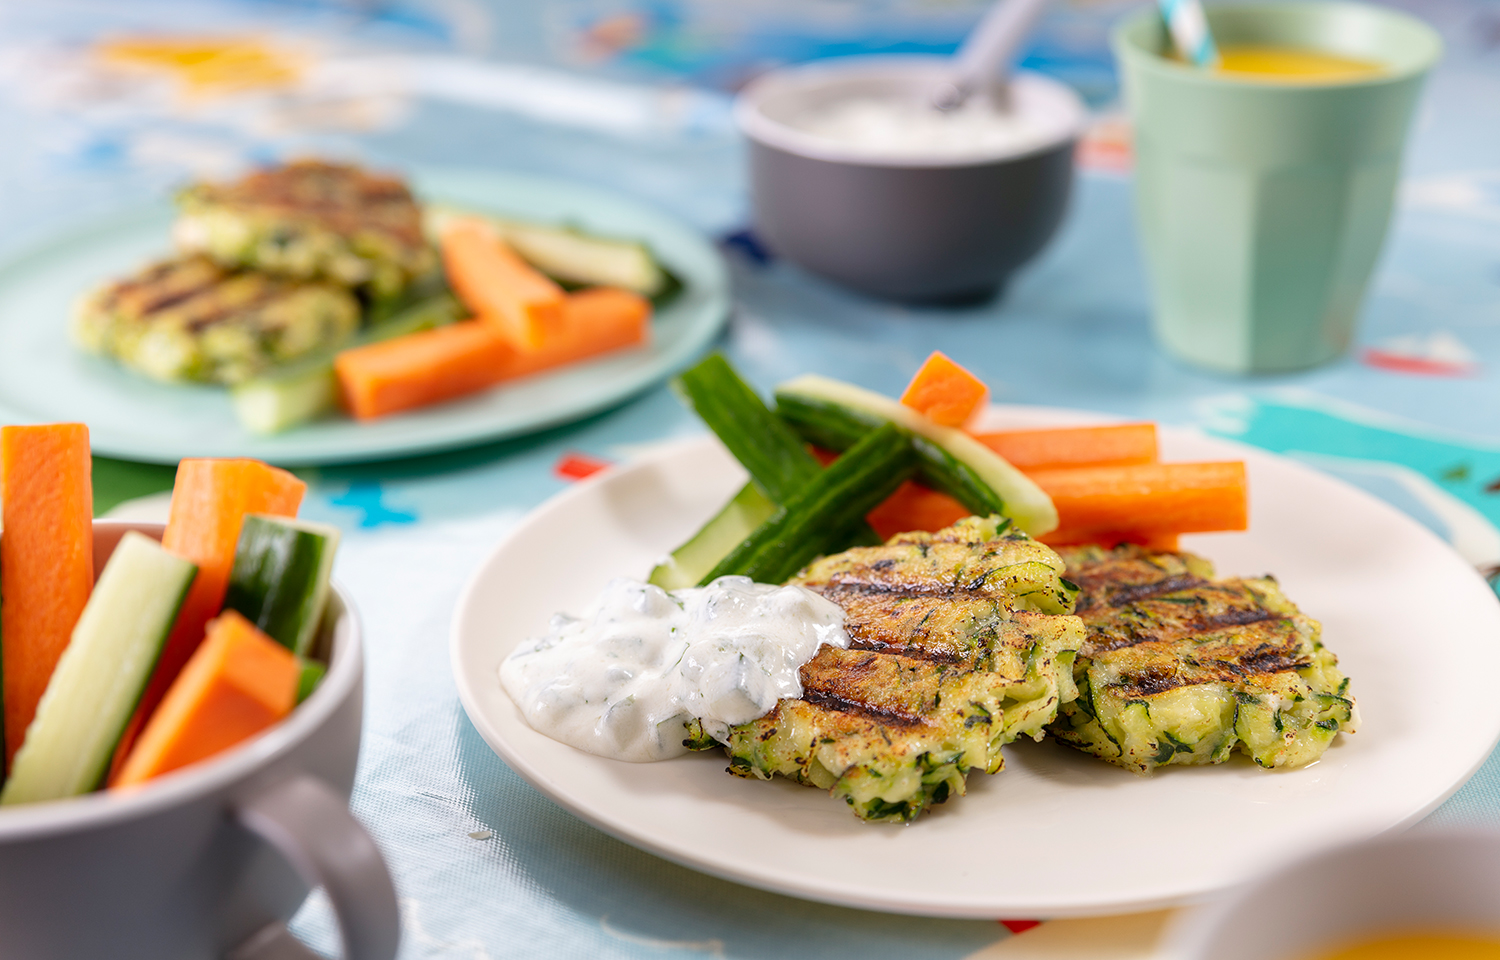 Courgette Feta Fritters with Tzatziki